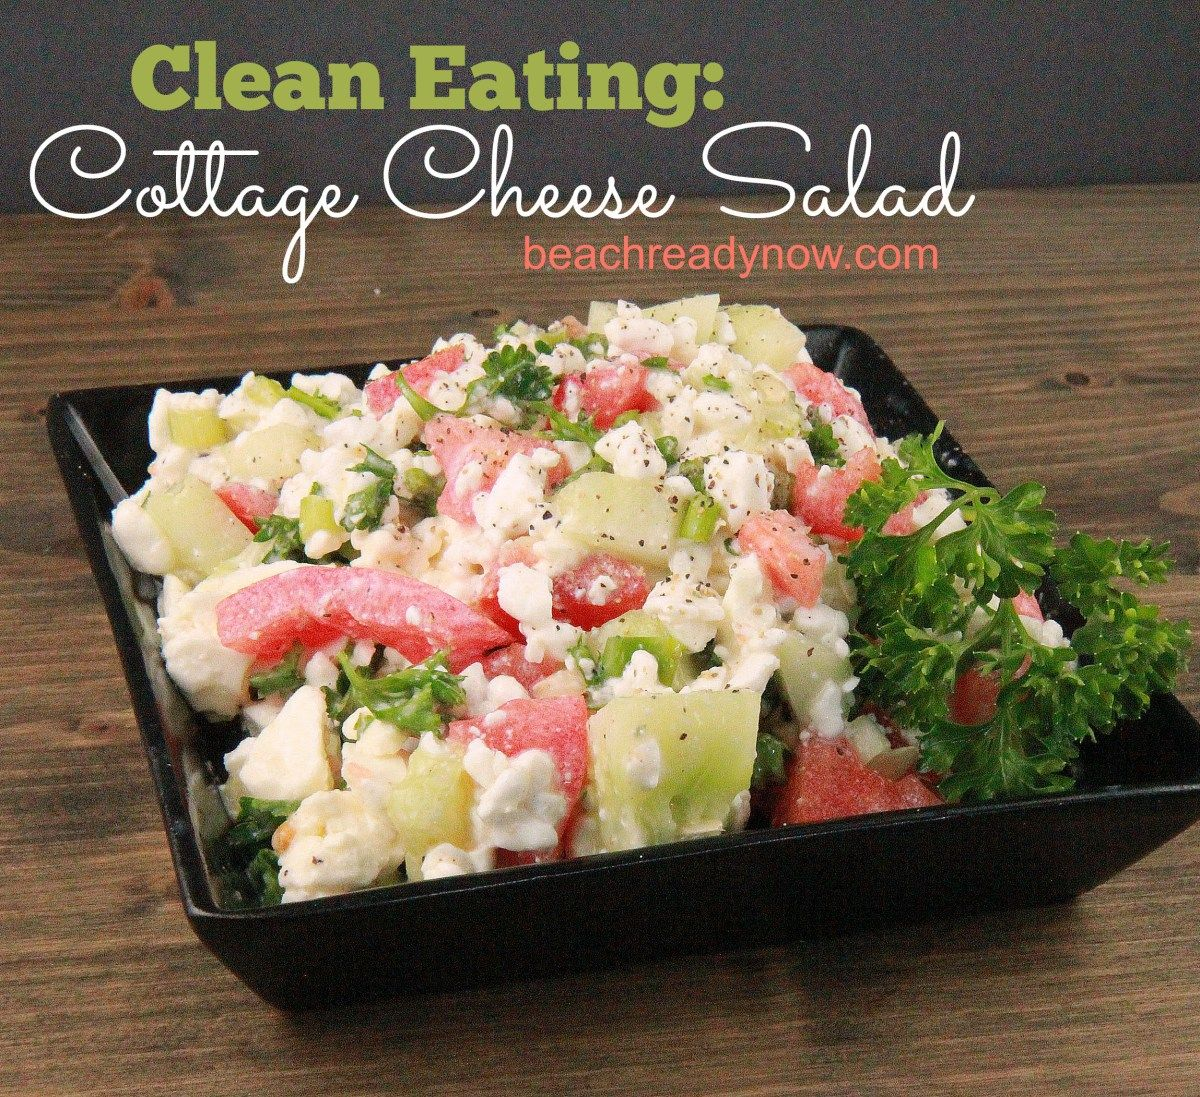 This cottage cheese salad is great if you're following a clean eating diet or a vegetarian meal plan.  Feta is optional.  It's extremely adaptable to other veggies you may have at home.…